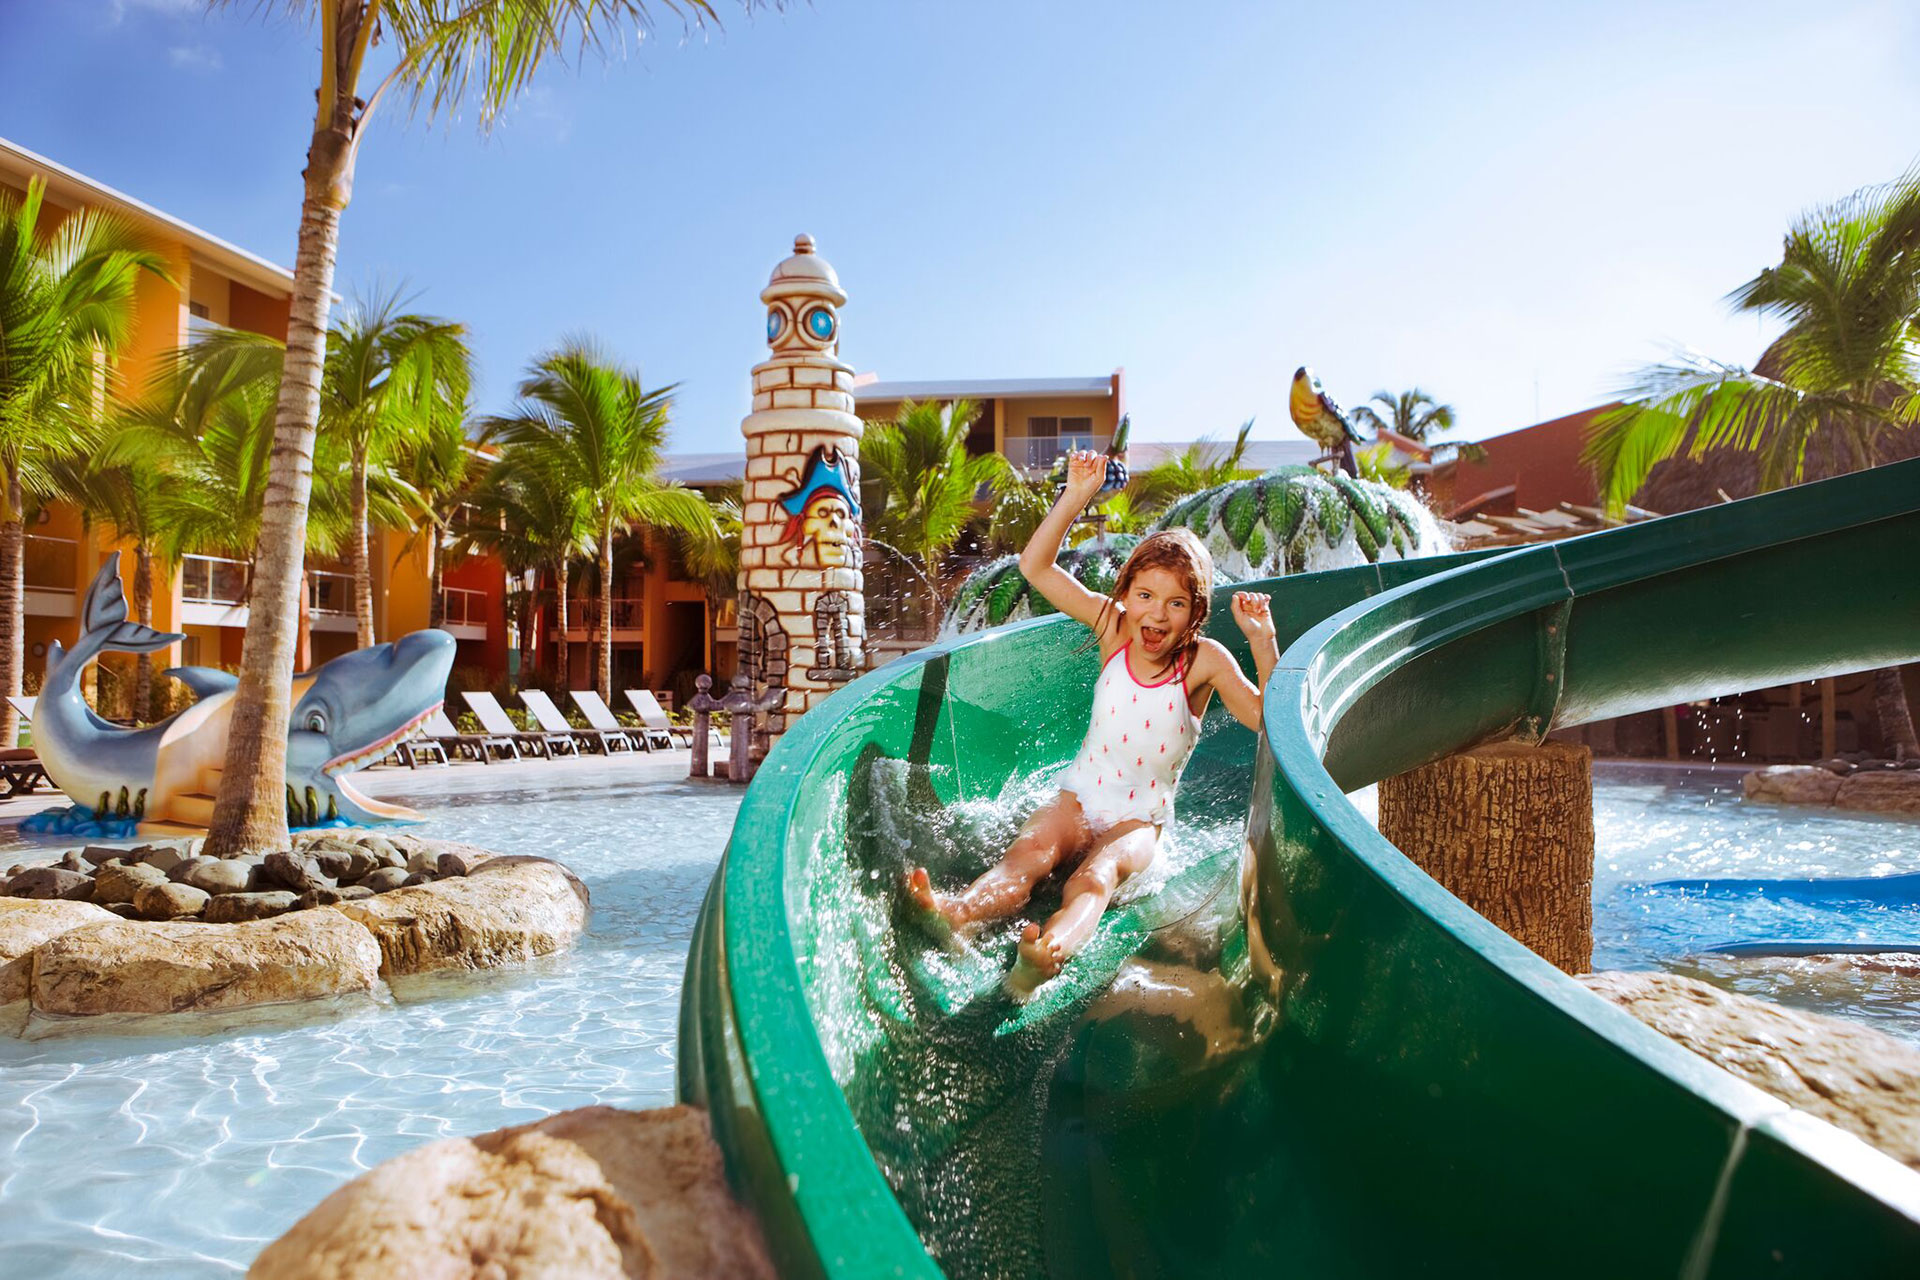 Young girl sliding down water slide at Barcelo Bavaro Palace